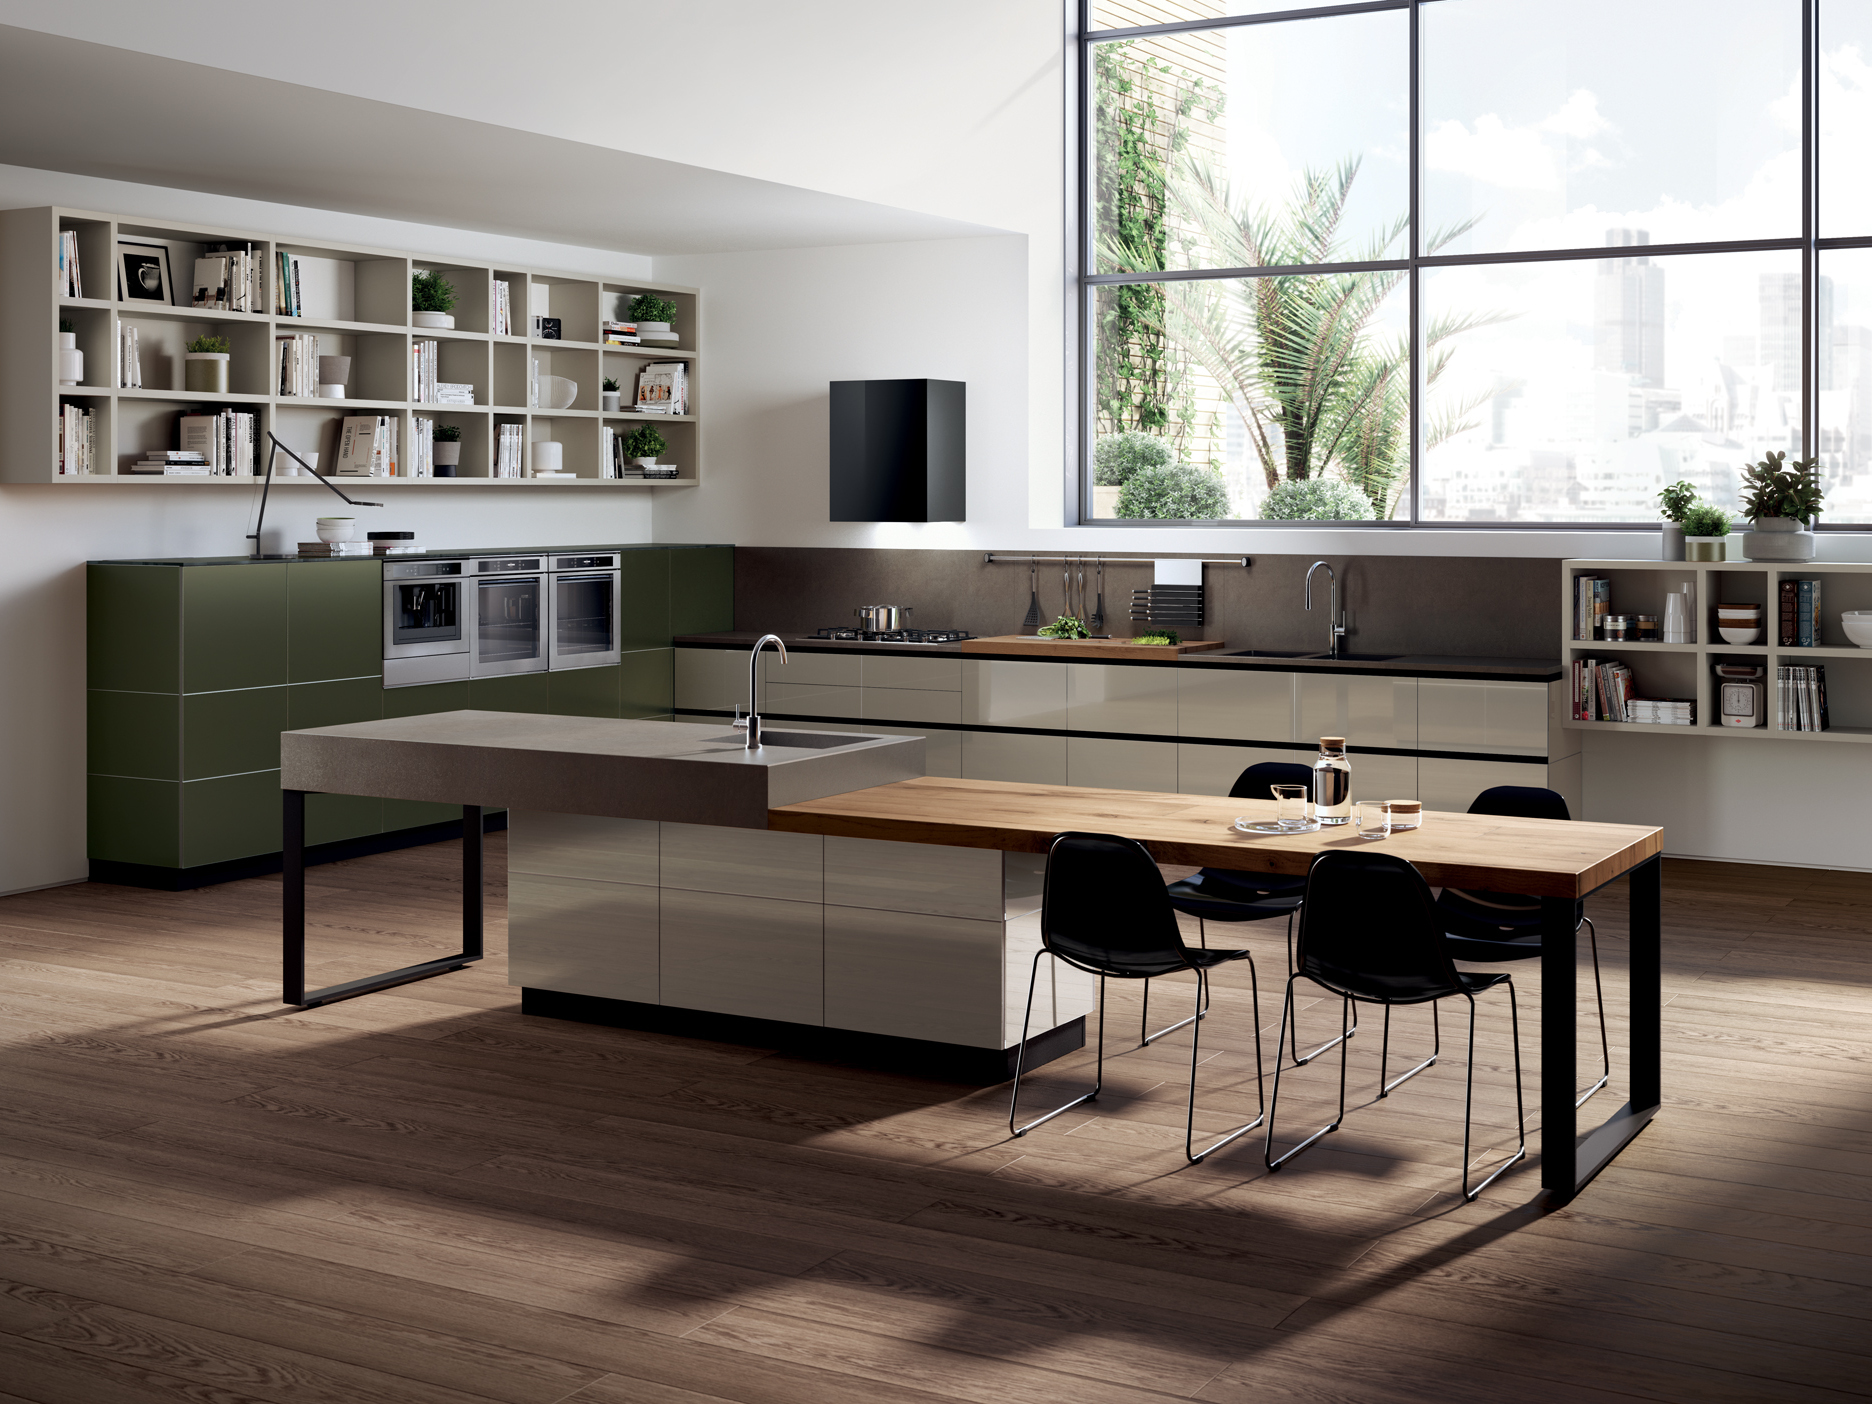 Products by Scavolini | Archiproducts